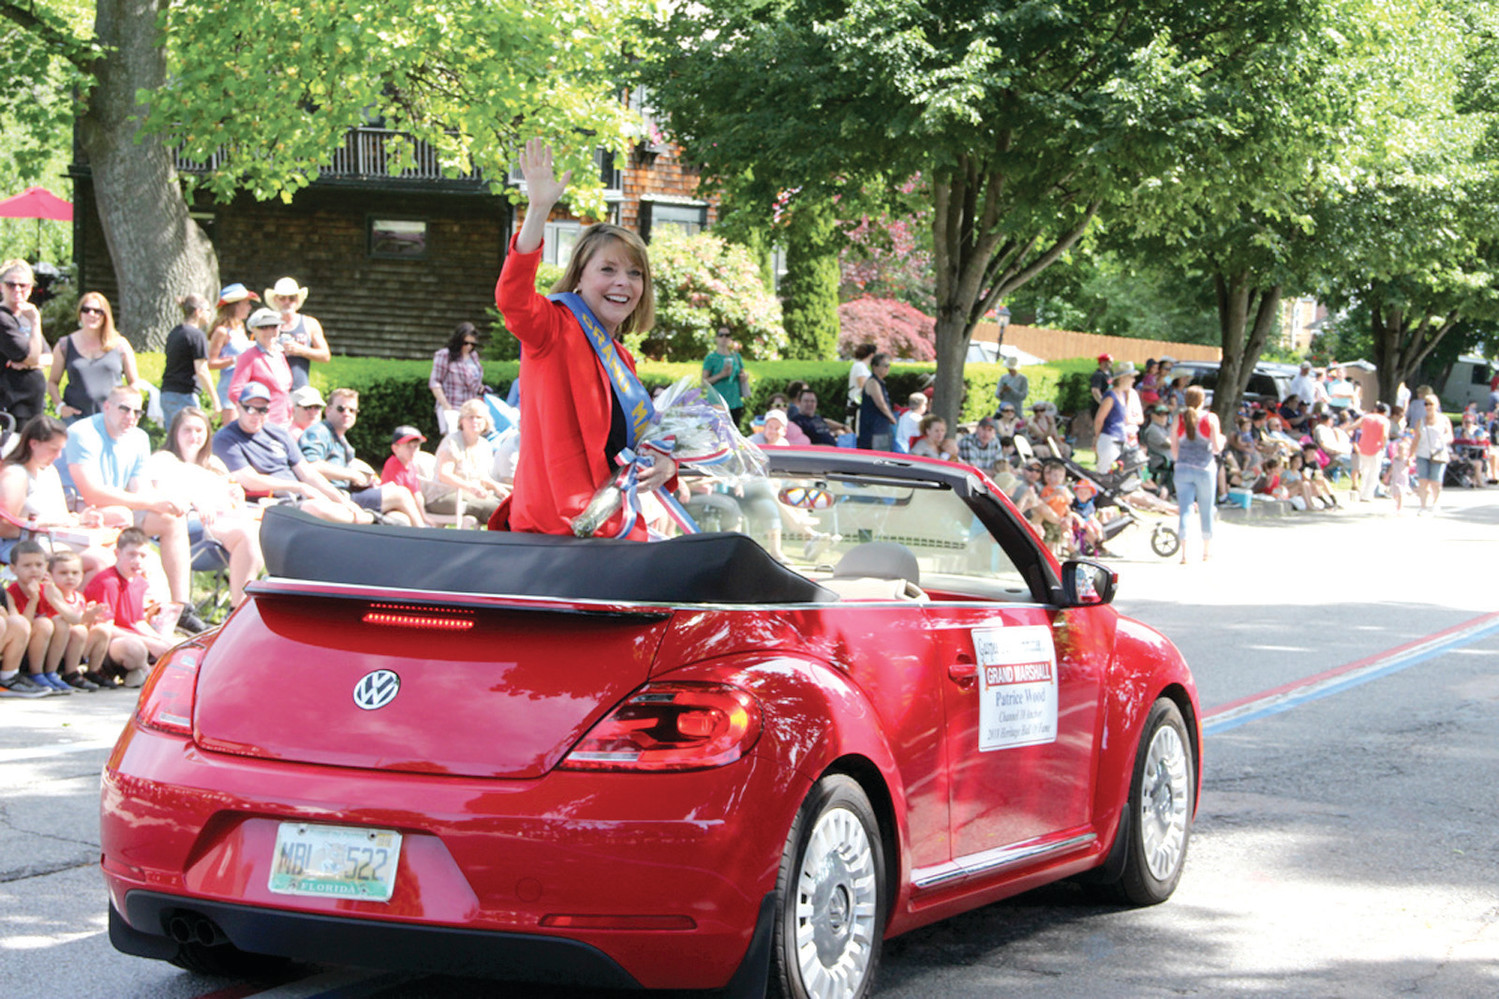 POPULAR MARSHAL: Channel 10 anchor Patrice Wood served as the parade grand marshal.